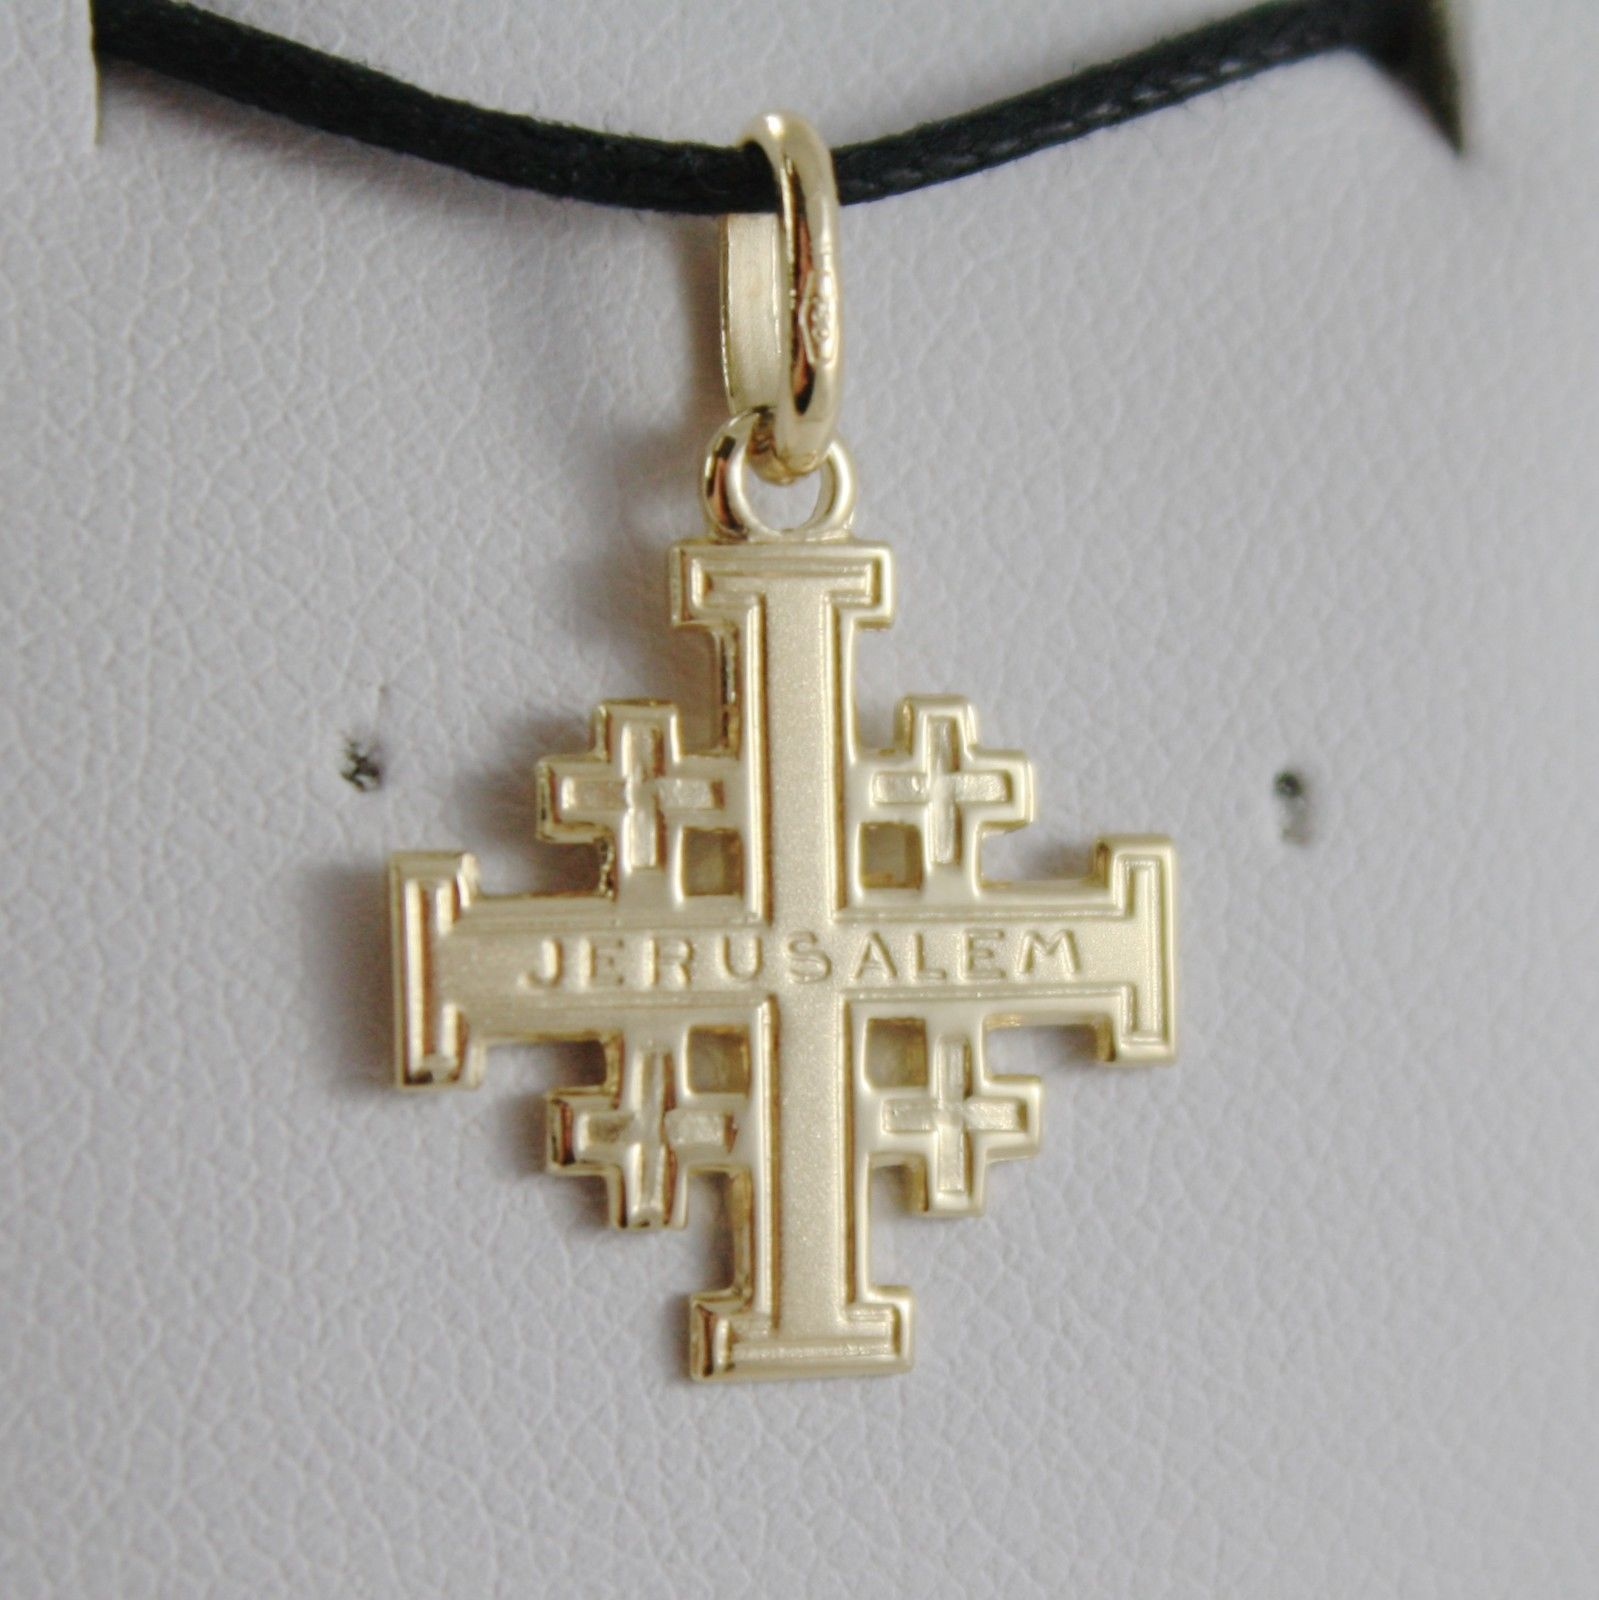 SOLID 18K YELLOW GOLD FLAT JERUSALEM CROSS, SMOOTH AND SATIN, MADE IN ITALY